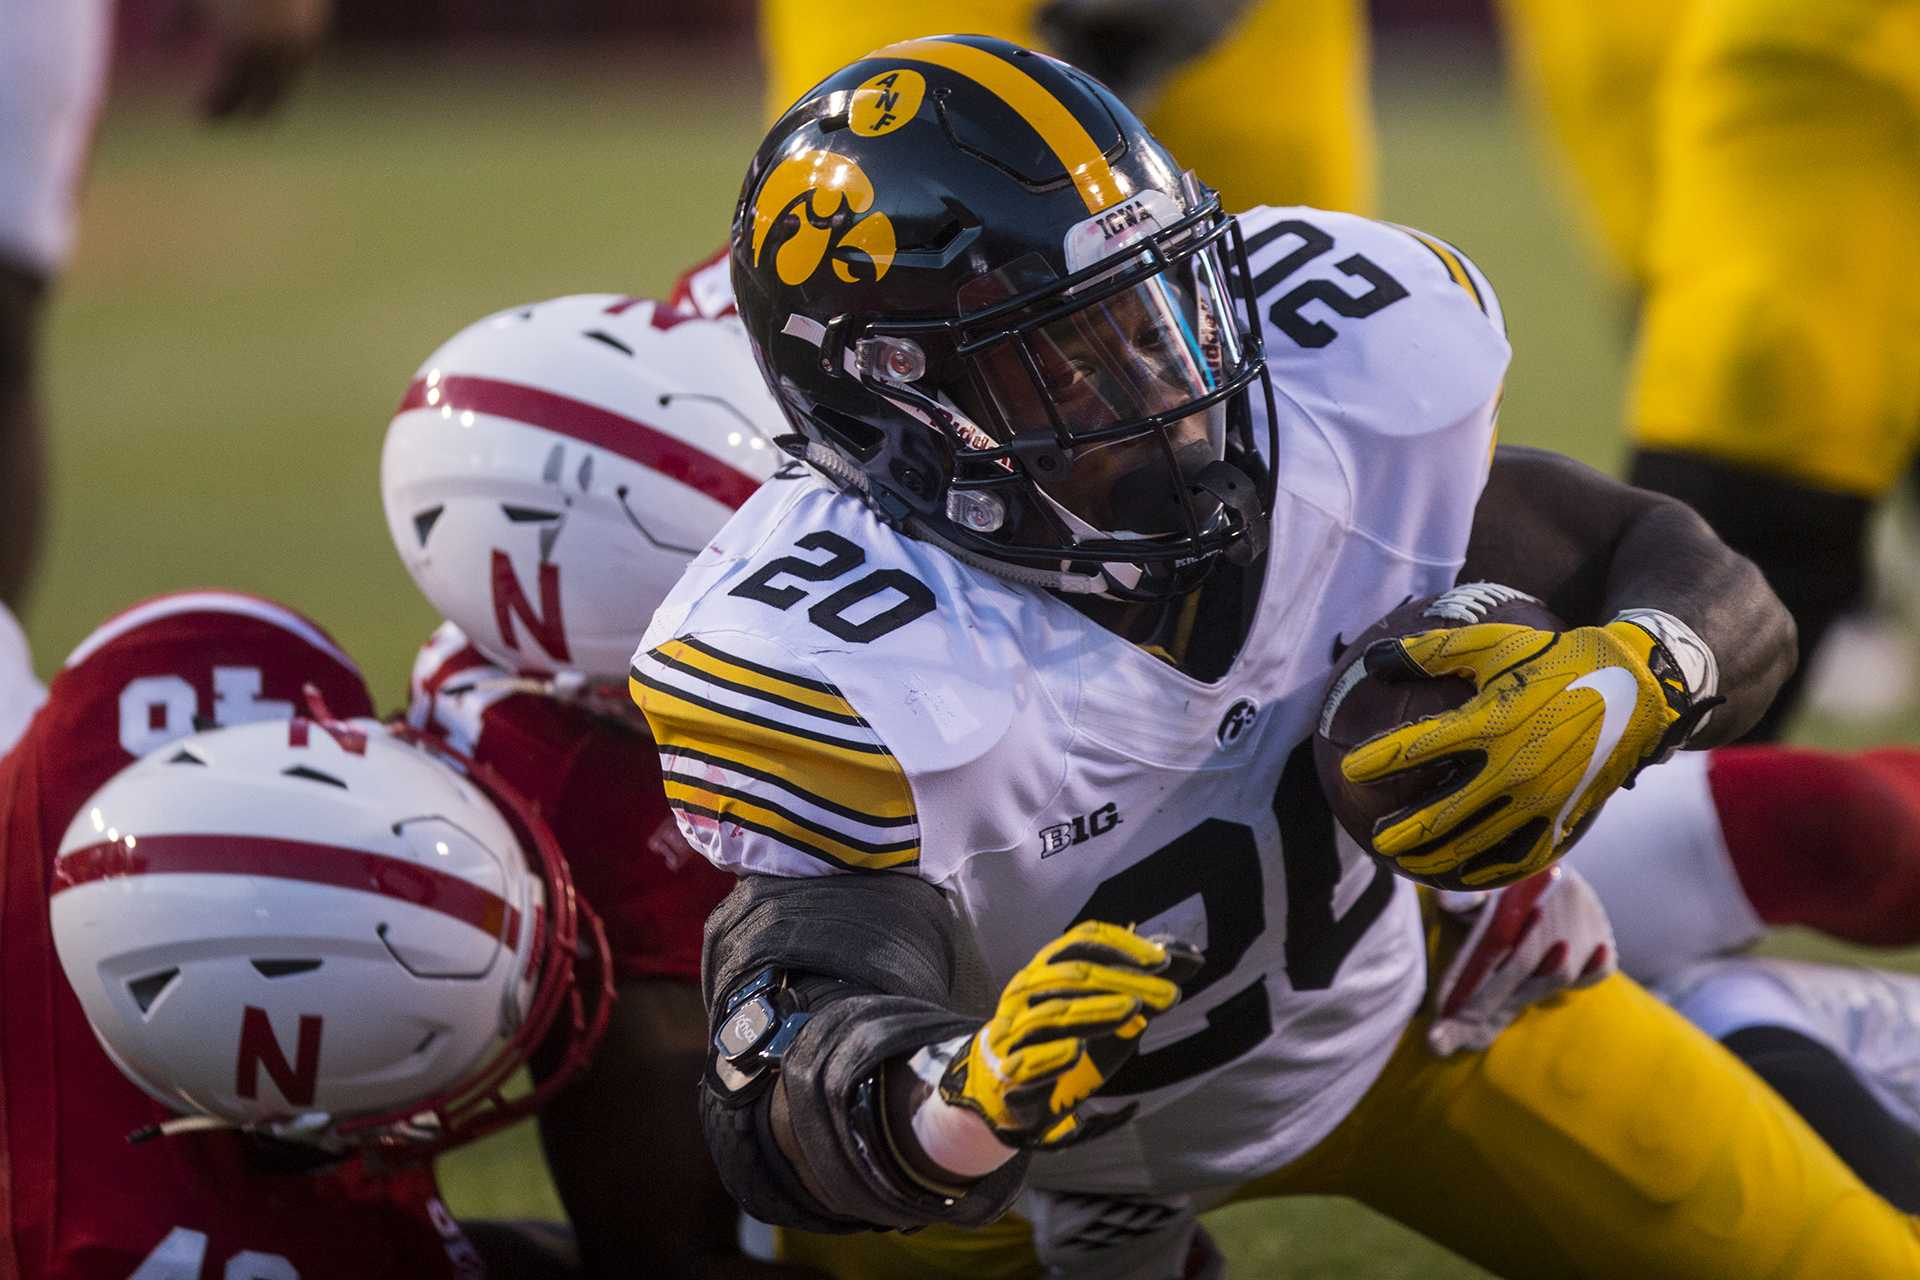 Iowa running back James Butler dives for a touchdown during Iowa's game against Nebraska at Memorial Stadium on Friday, Nov. 24th, 2017. The Hawkeyes defeated the Cornhuskers 56-14. (Nick Rohlman/The Daily Iowan)